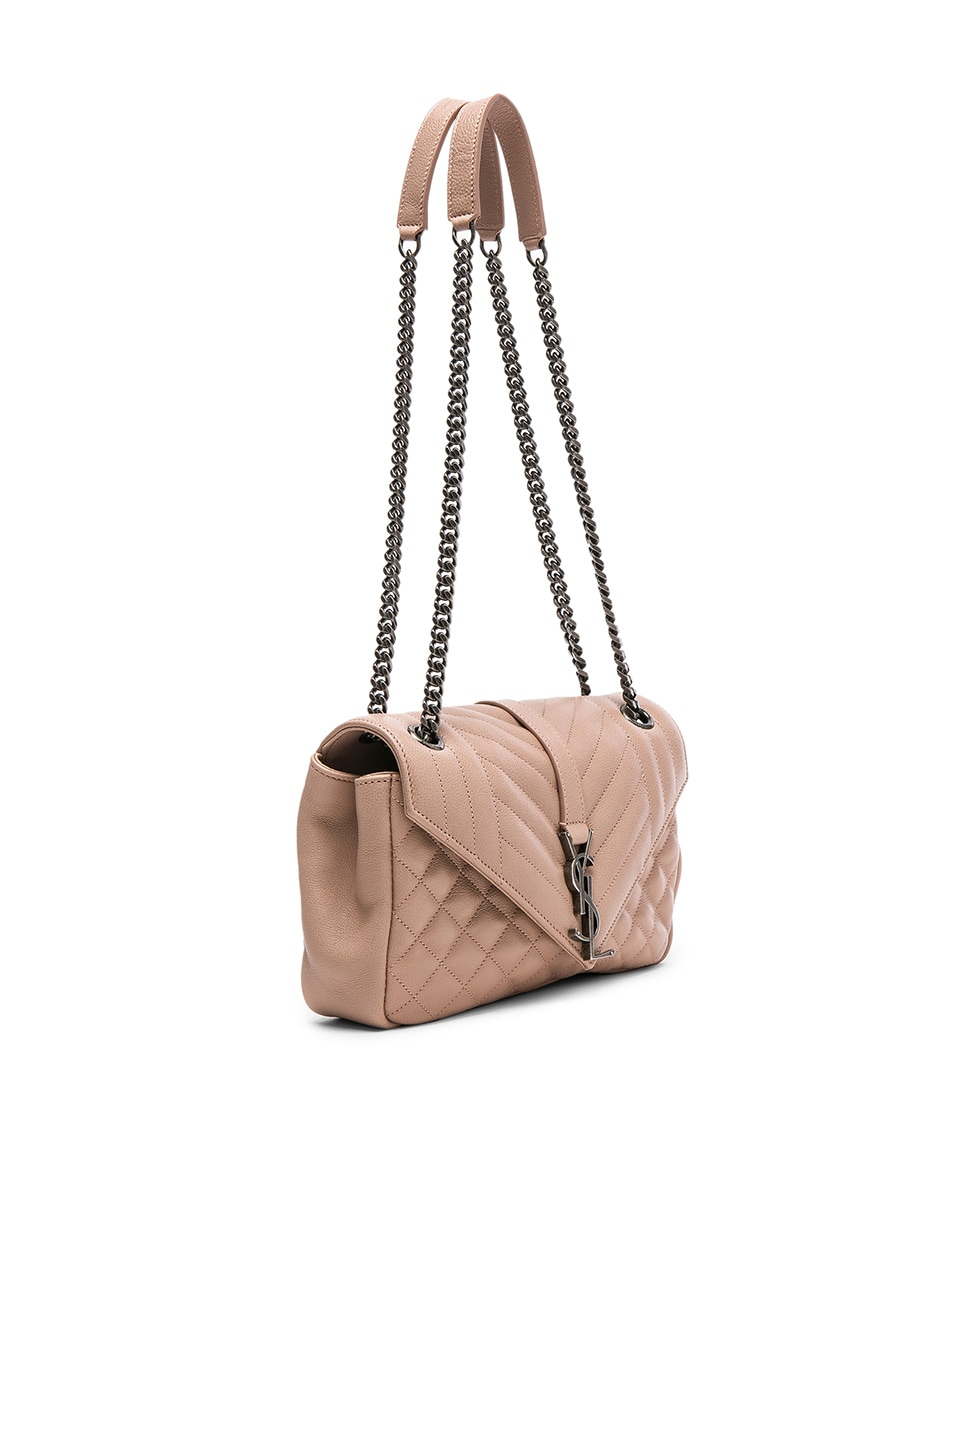 Image 3 of Saint Laurent Medium Envelope Chain Bag in Nude Pink